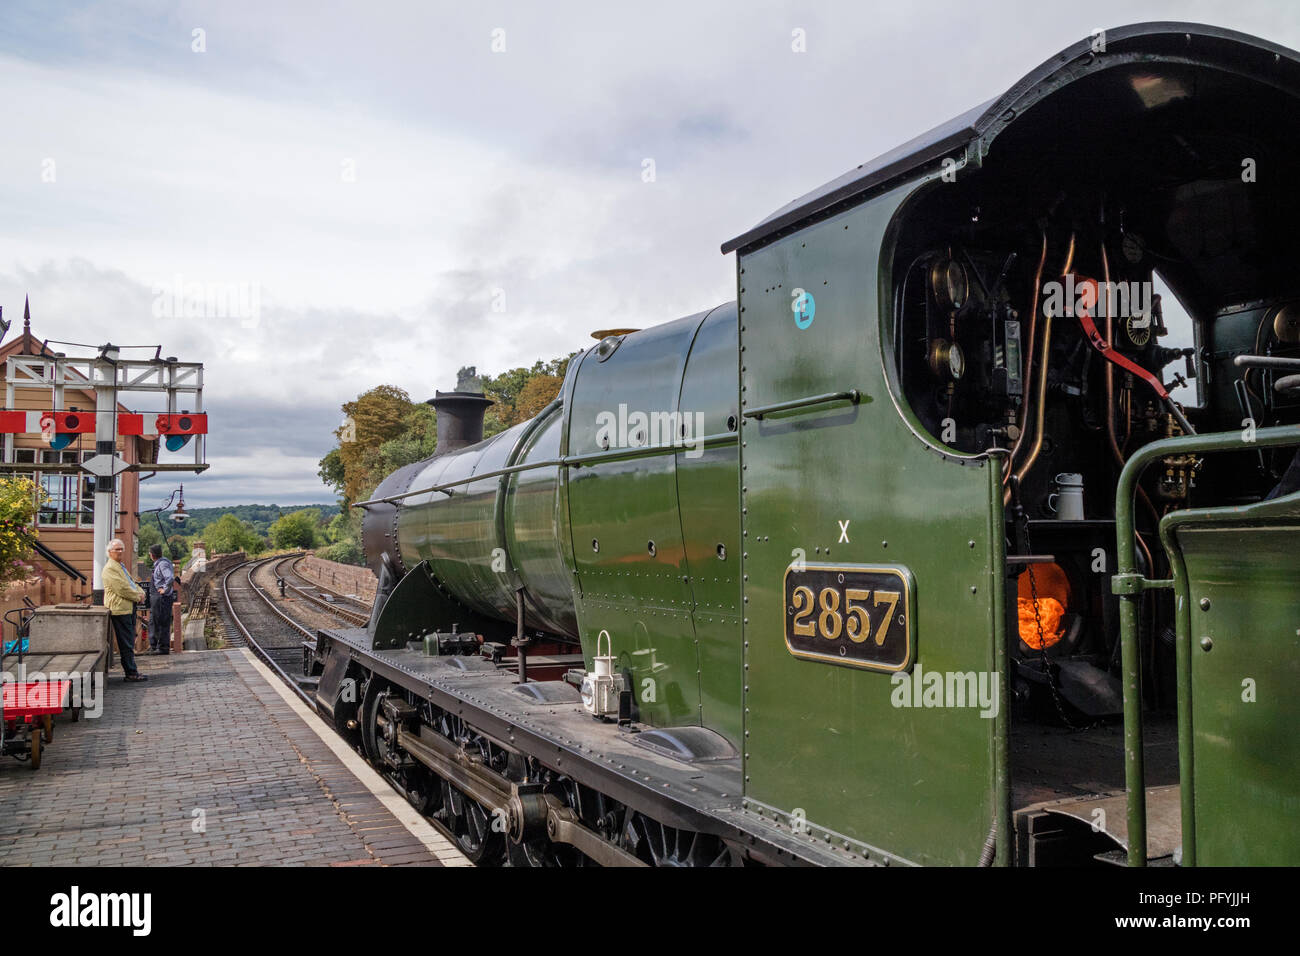 A steam train at Bewdley station on the Severn Valley Railway, Bewdley, Worcestershire, England, UK Stock Photo